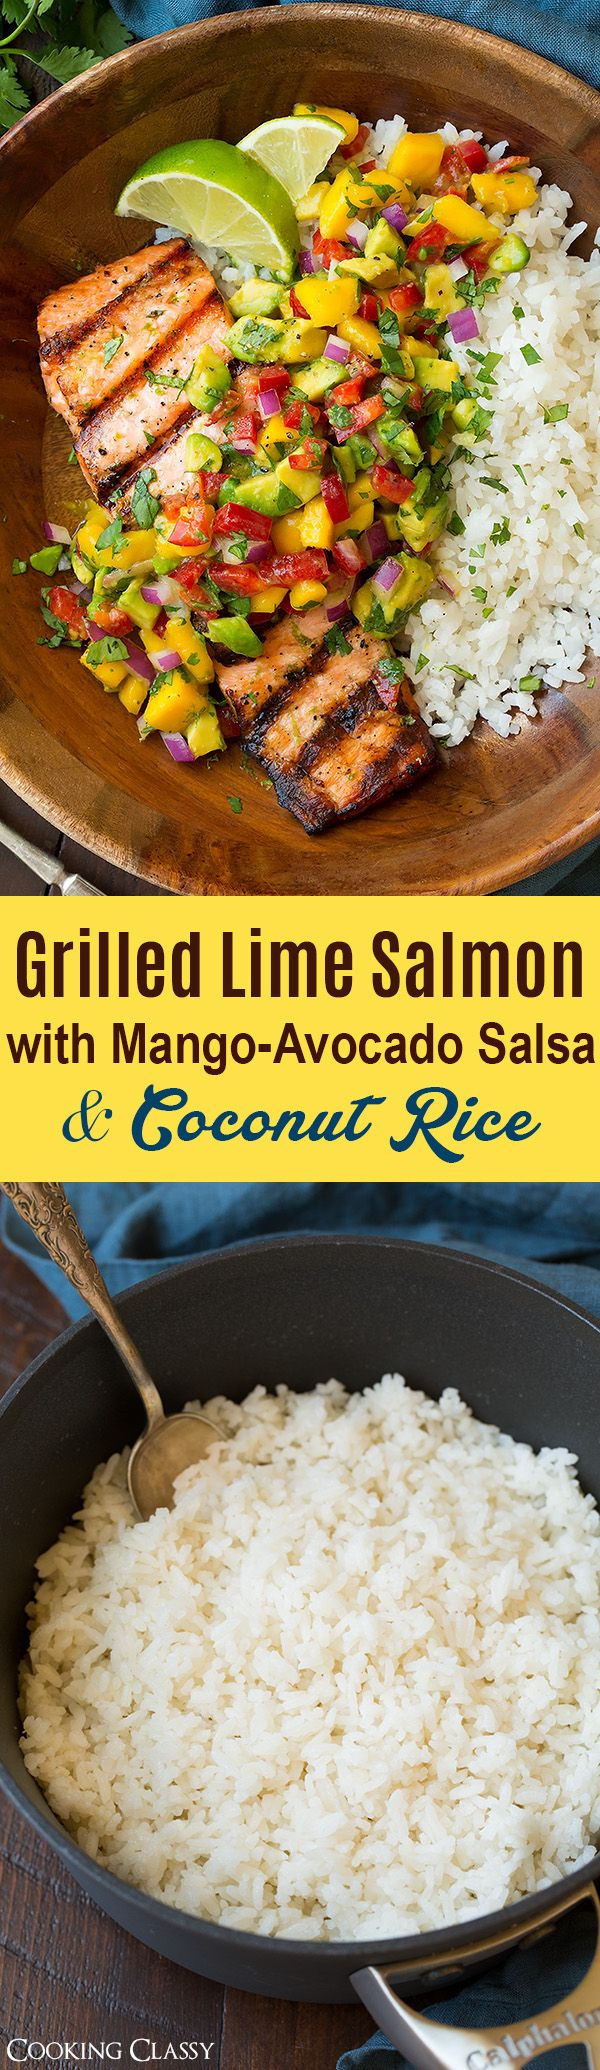 All Food and Drink: Grilled Lime Salmon with Avocado-Mango Salsa and C...